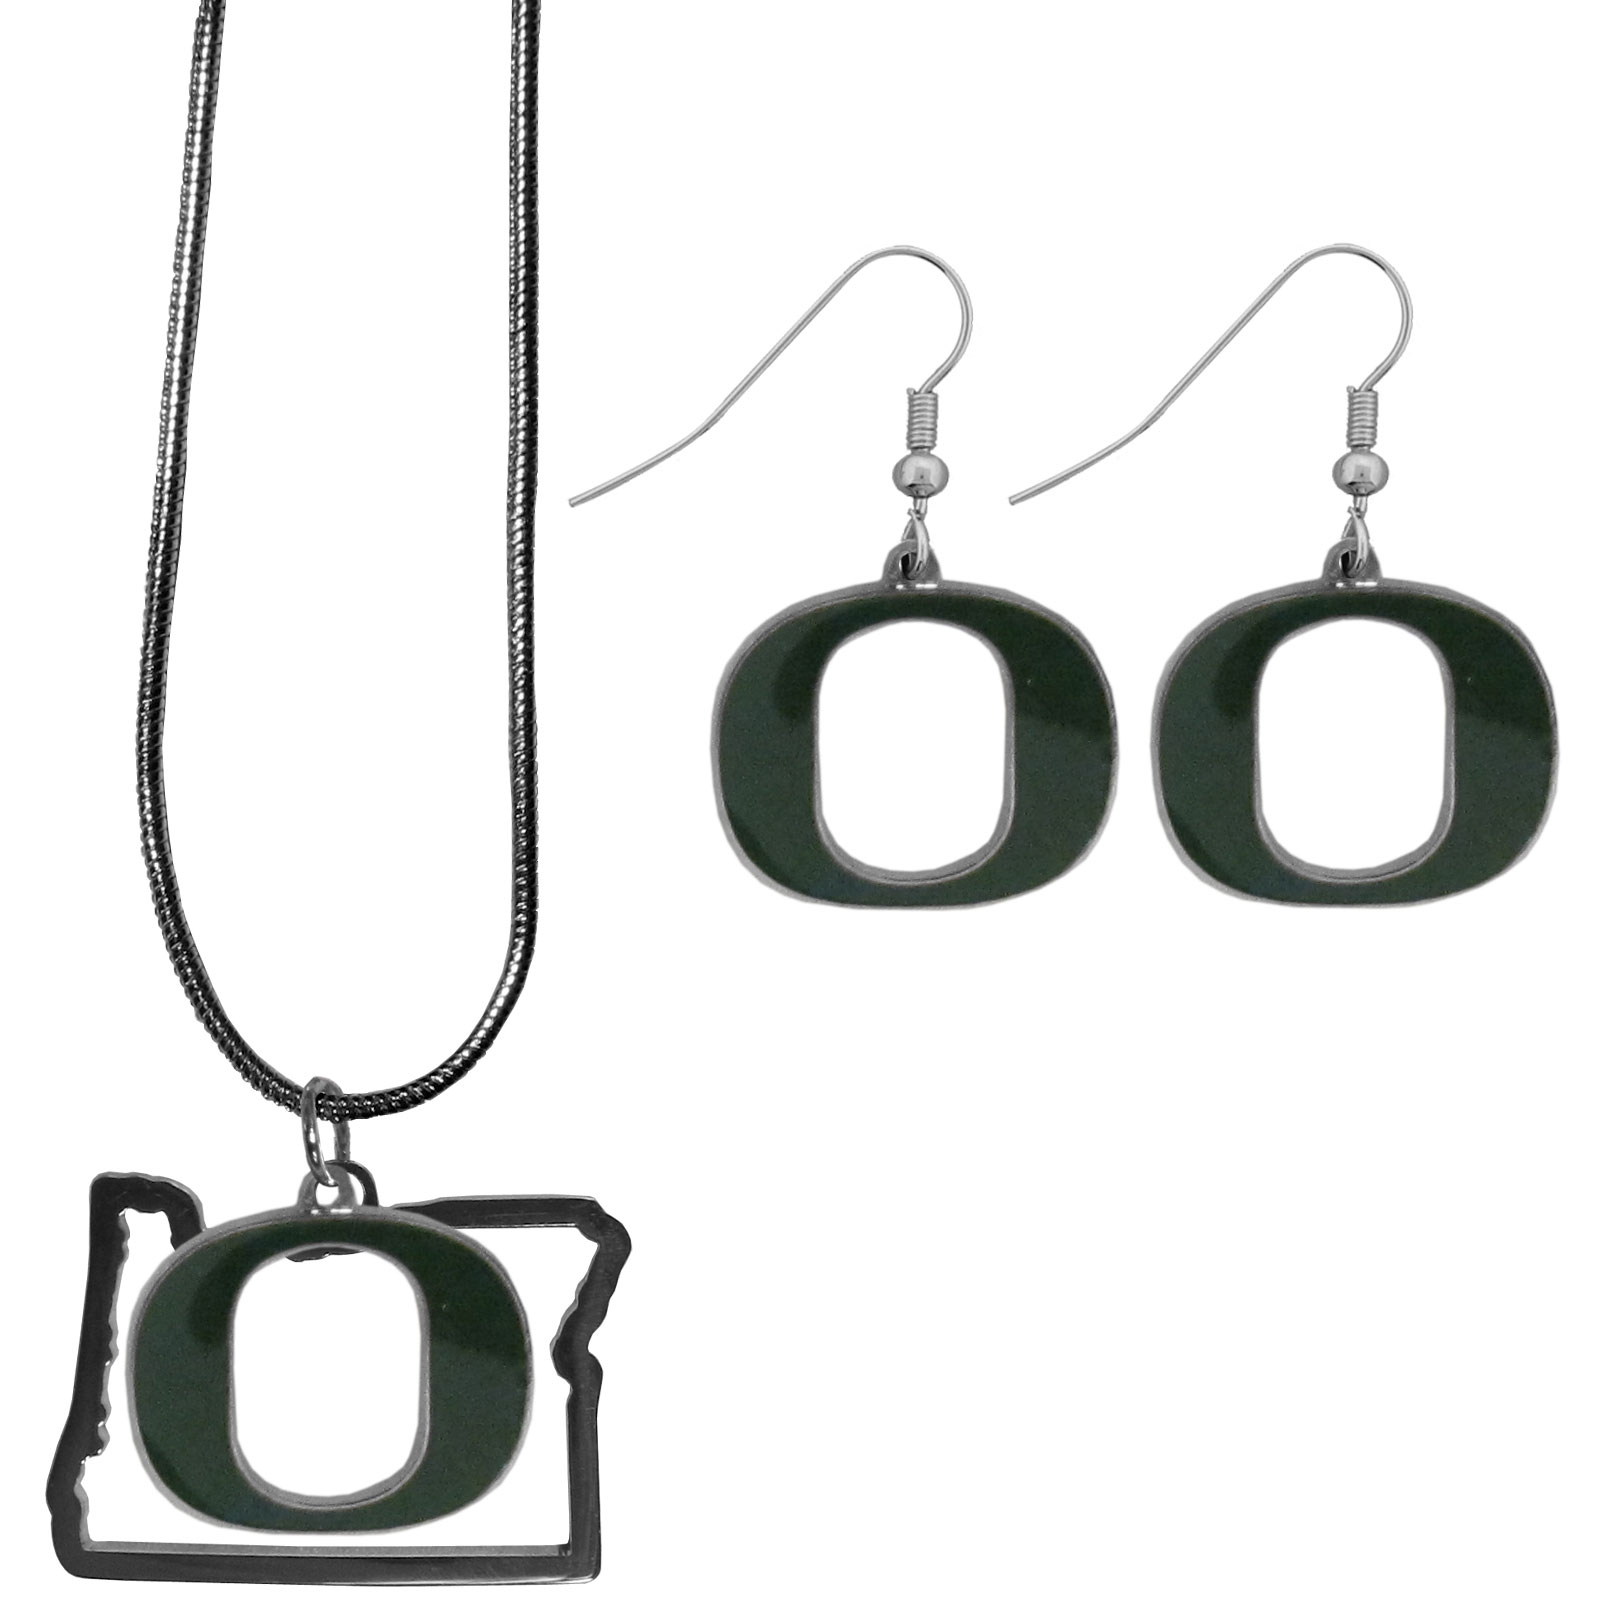 Oregon Ducks Dangle Earrings and State Necklace Set - Get in on the trend! State themes are a trend that just keeps getting more popular and this jewelry set takes the state style and give it a sporty twist with a Oregon Ducks necklace that features an Arizona state outline charm paired with a beautiful team charm and matching team charm dangle earrings. The earrings feature hypoallergenic fishhook posts that are nickel free.